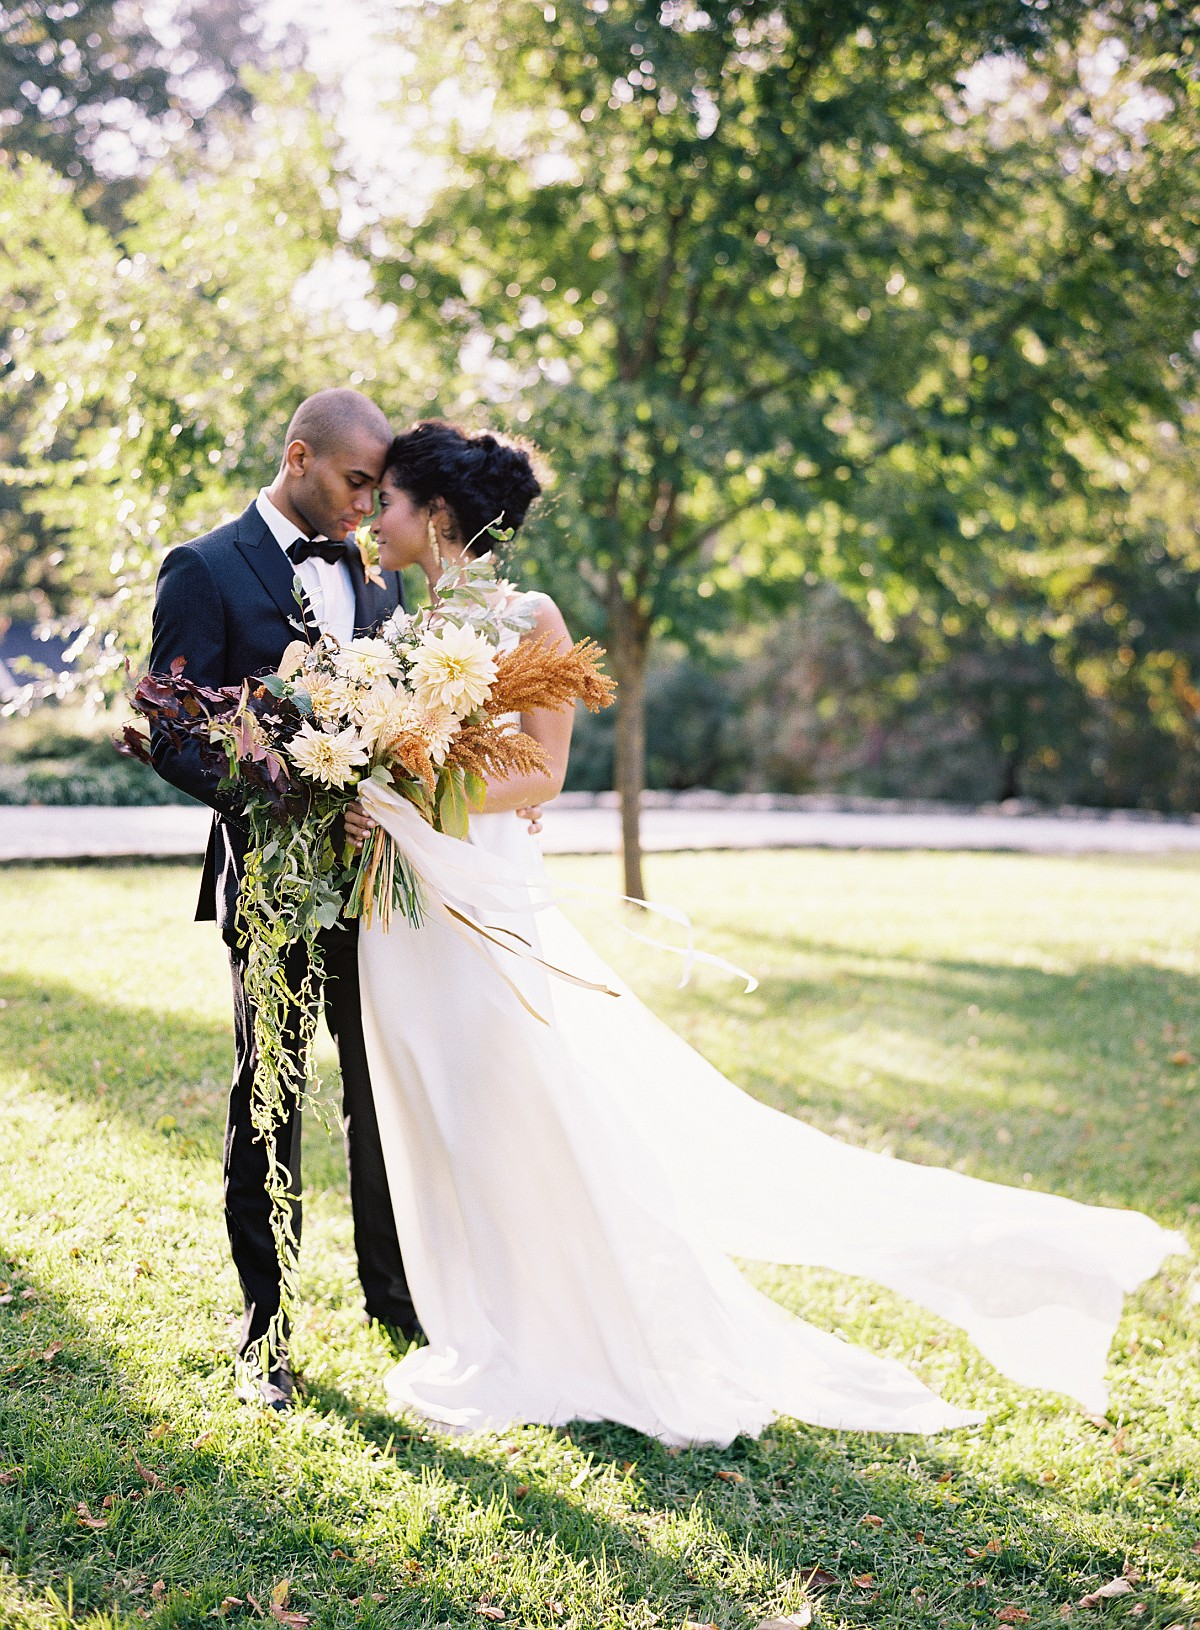 Autumnal Wedding Inspired by Natural Beauty by Joey Kennedy Photography